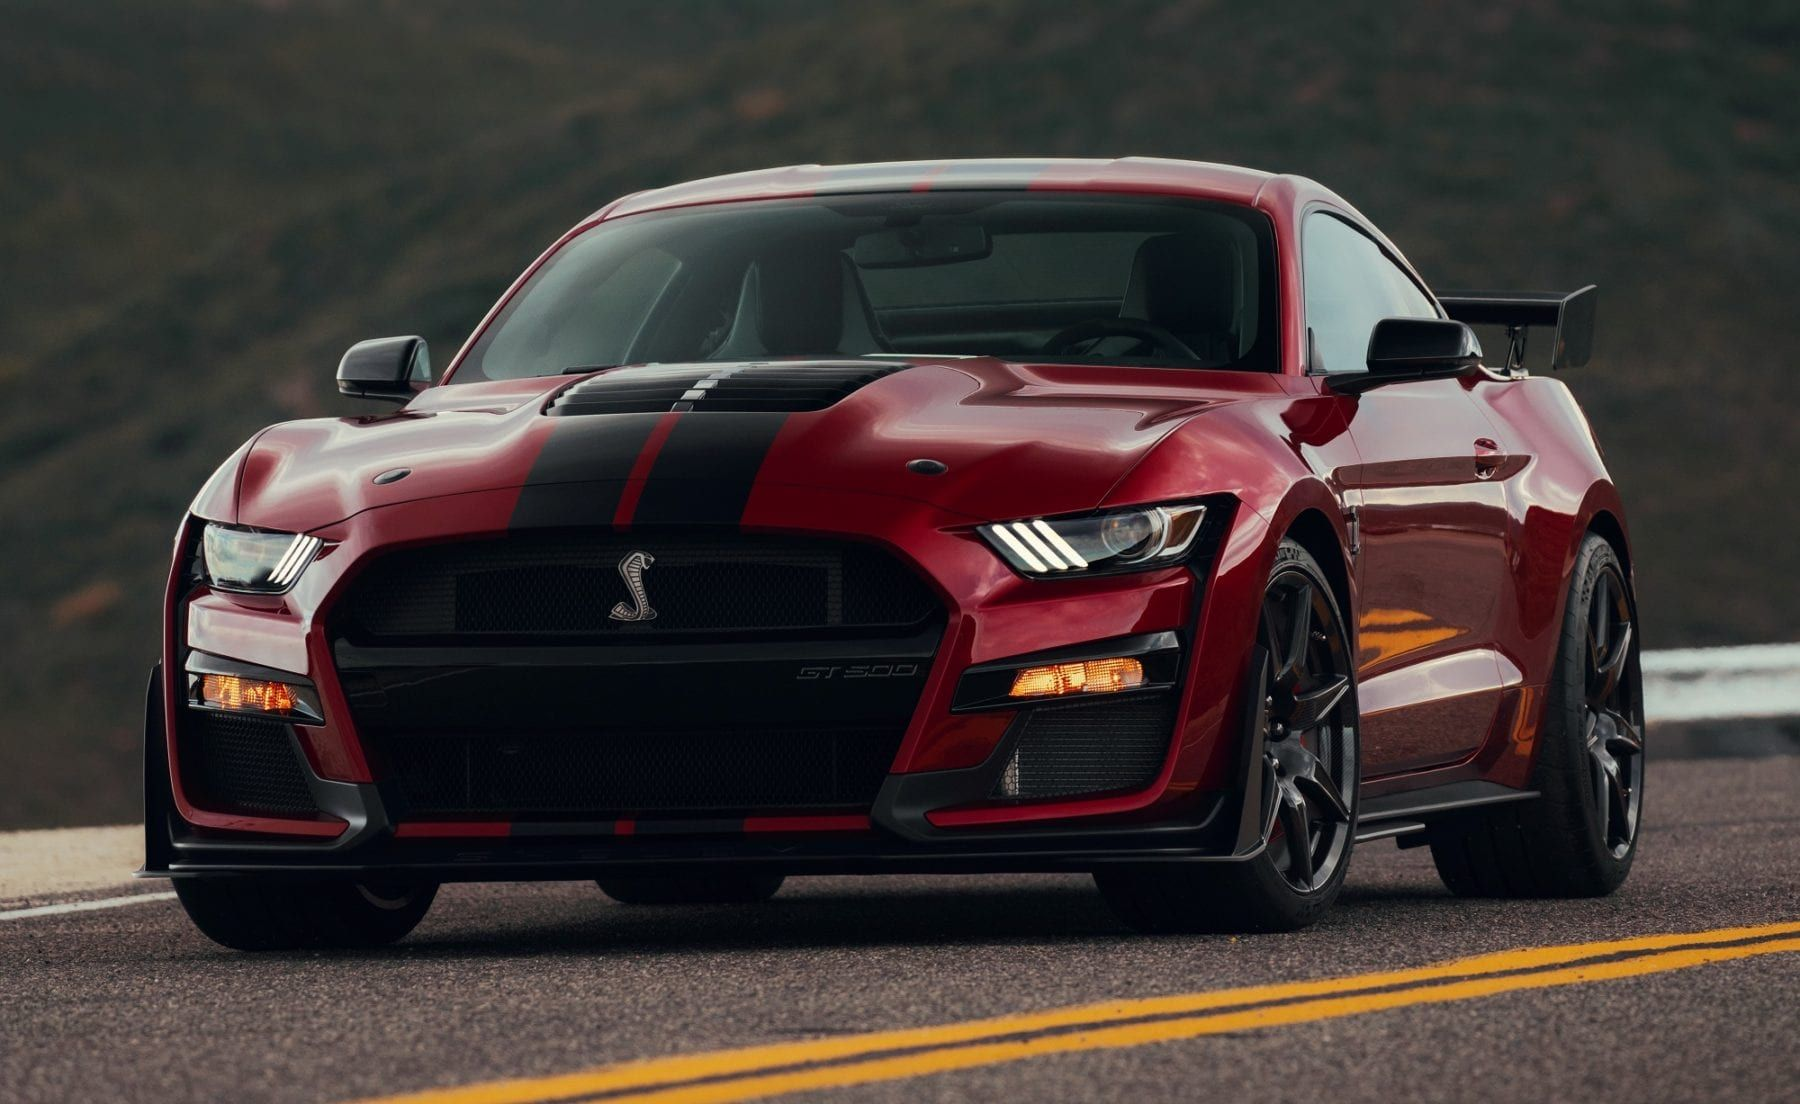 2020 Ford Mustang Shelby Gt500 Coupe Ford Mustang Shelby Gt500 Mustang Shelby Ford Mustang Shelby